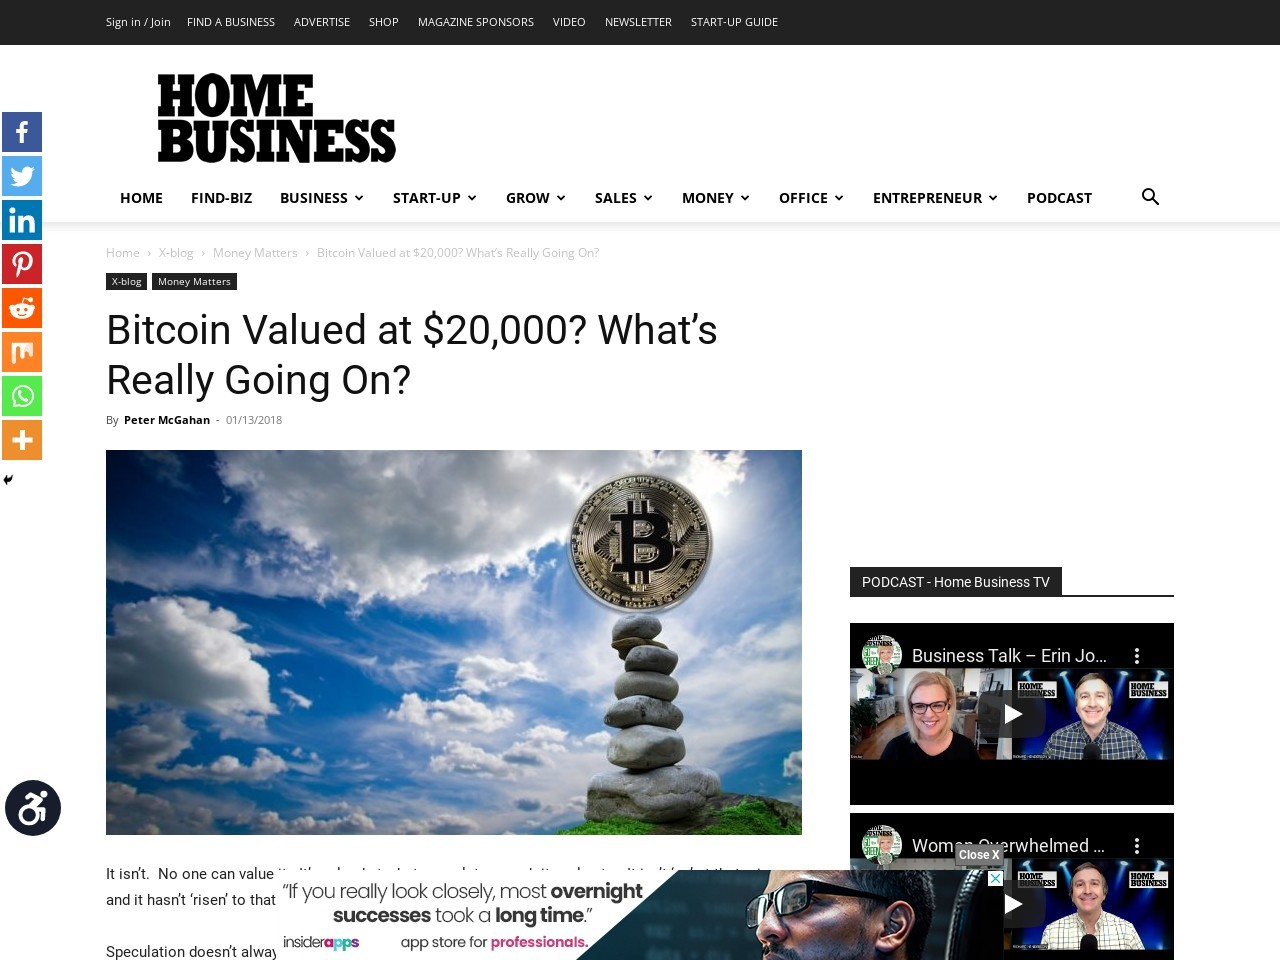 Bitcoin Valued at $20,000? What's Really Going On?